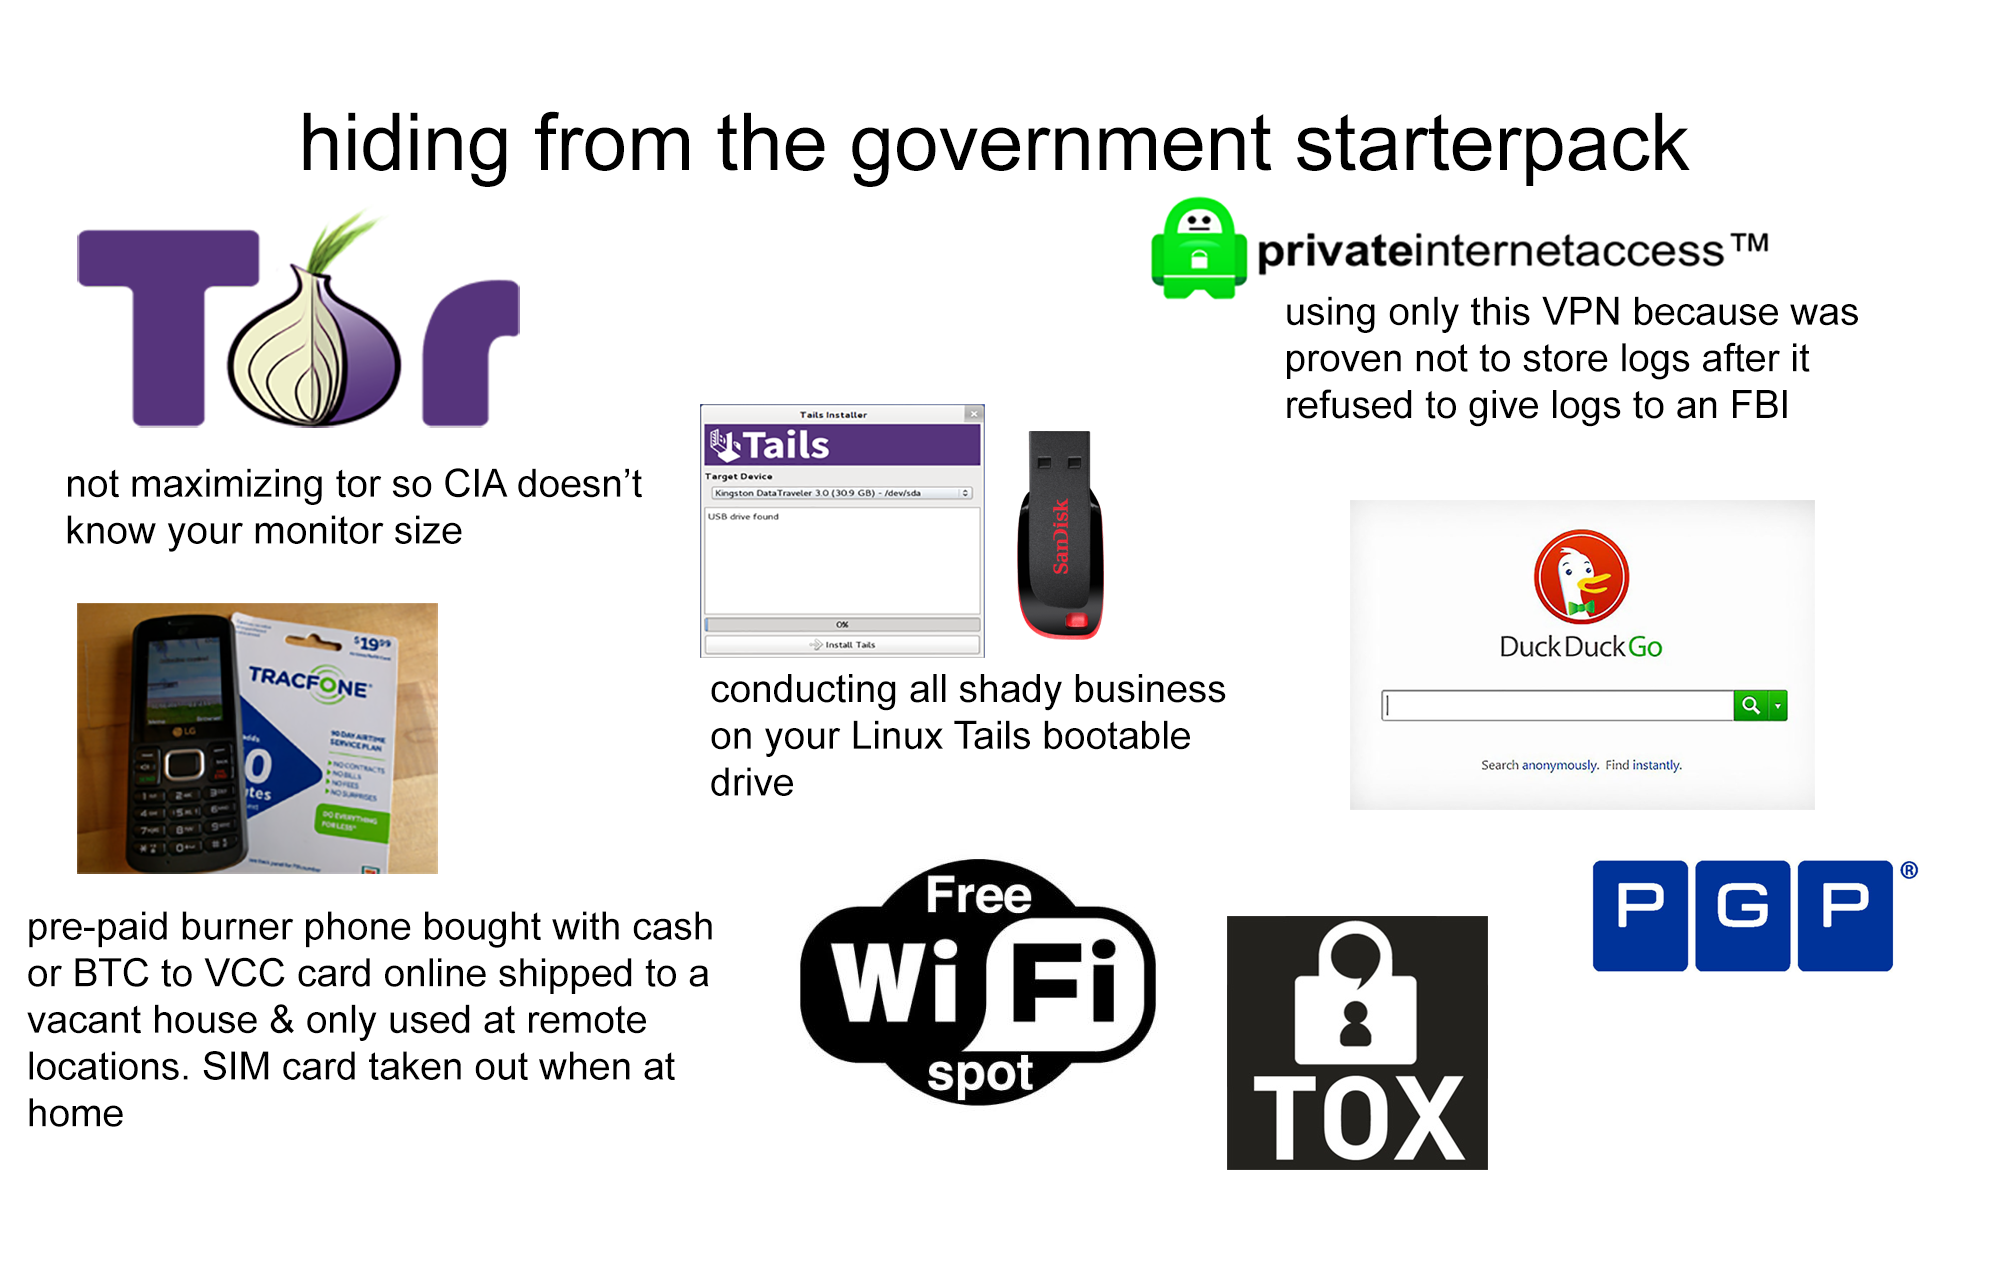 Hiding from the government starterpack